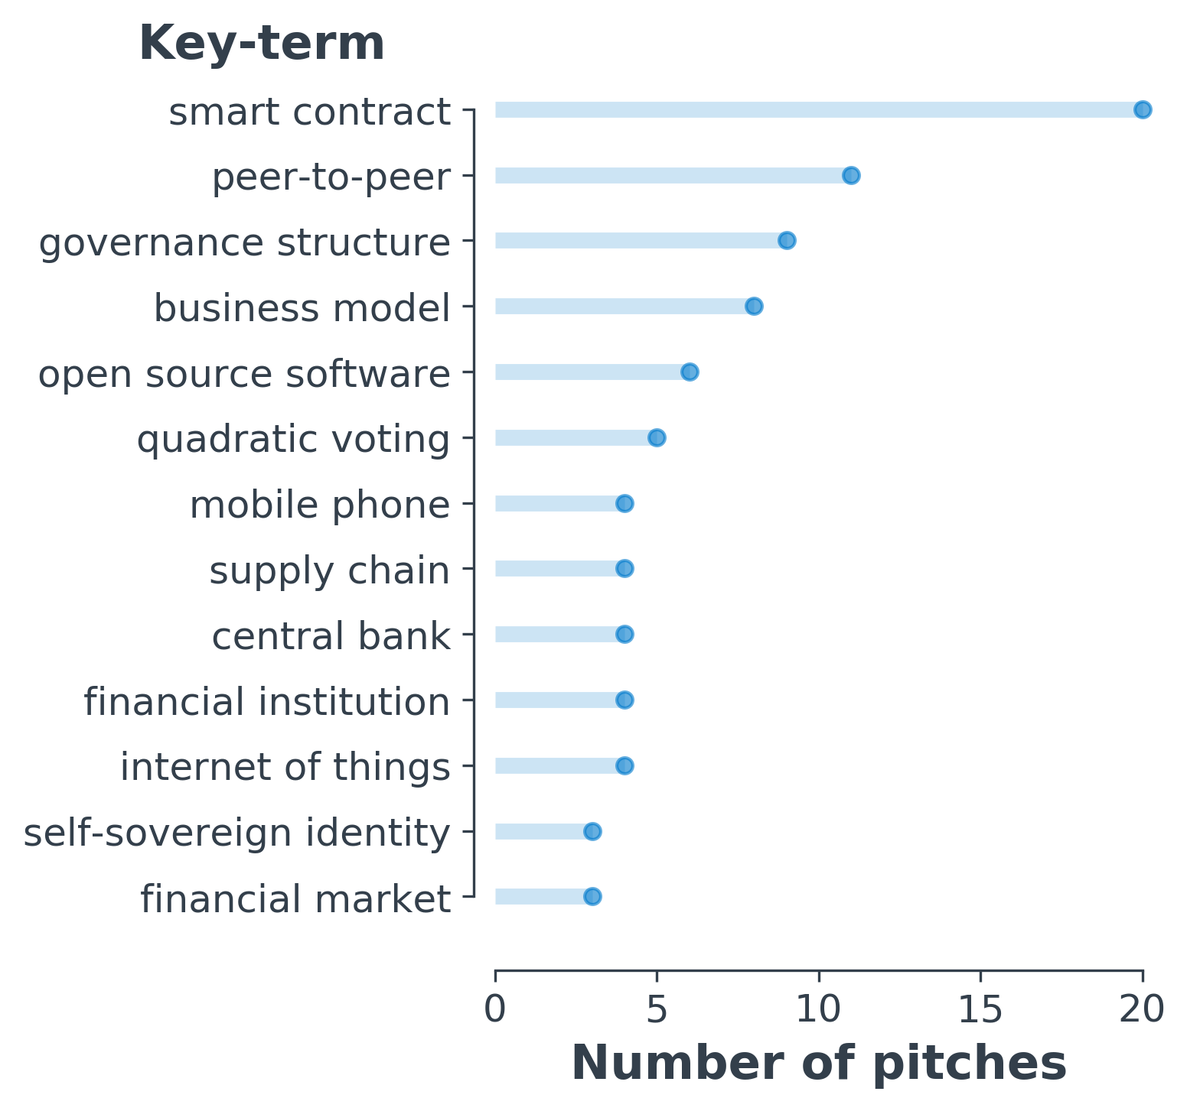 Number of pitches in which each key-term was present